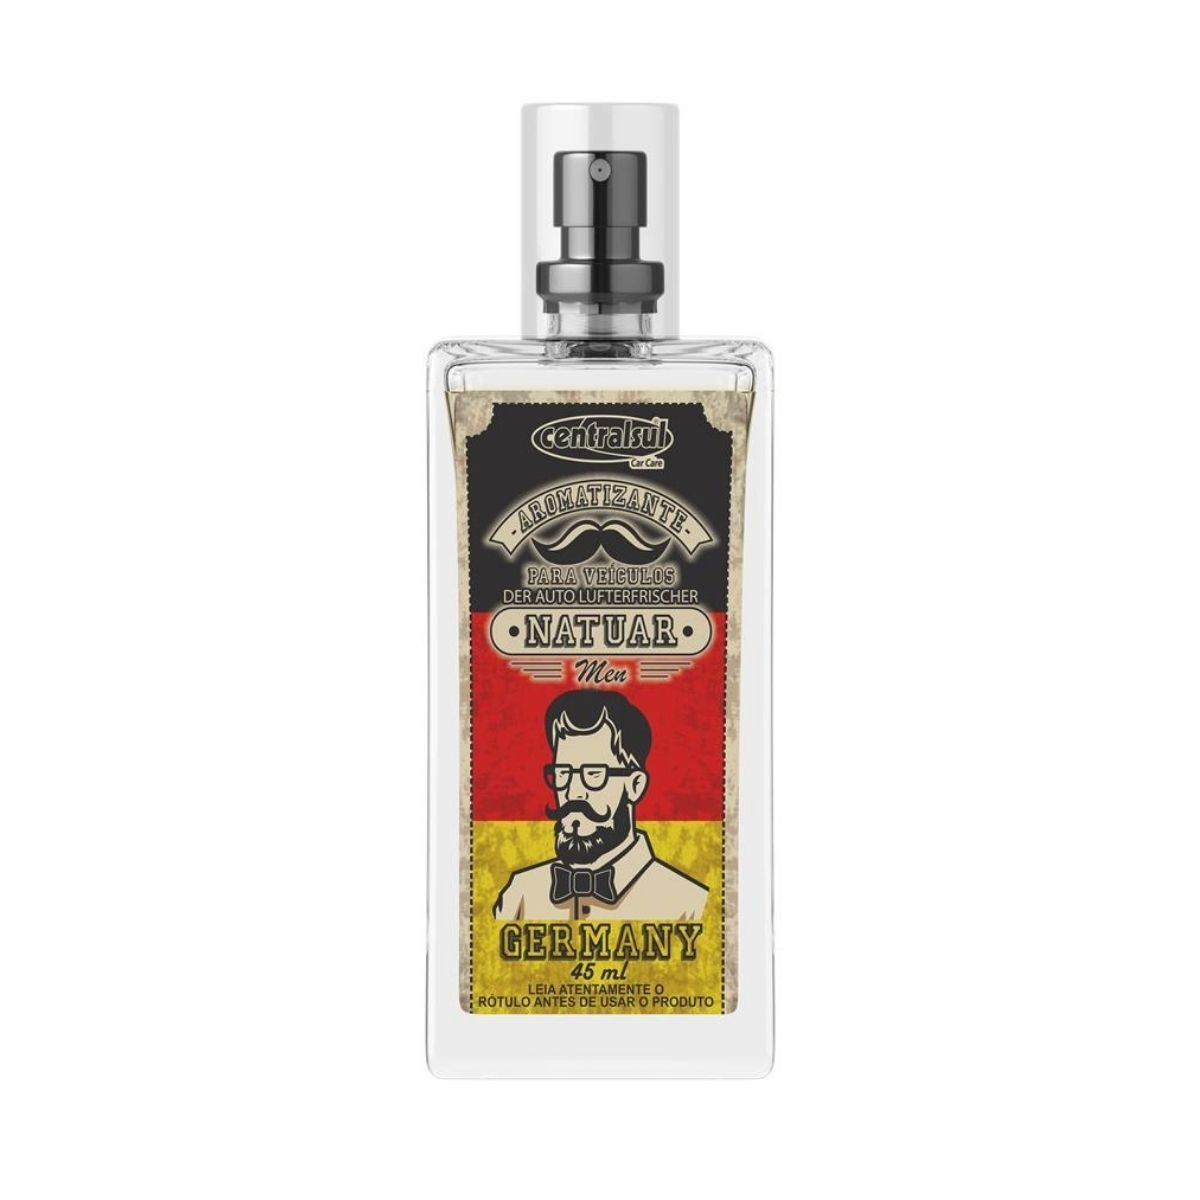 Aromatizante Natuar Men Germany 45ml